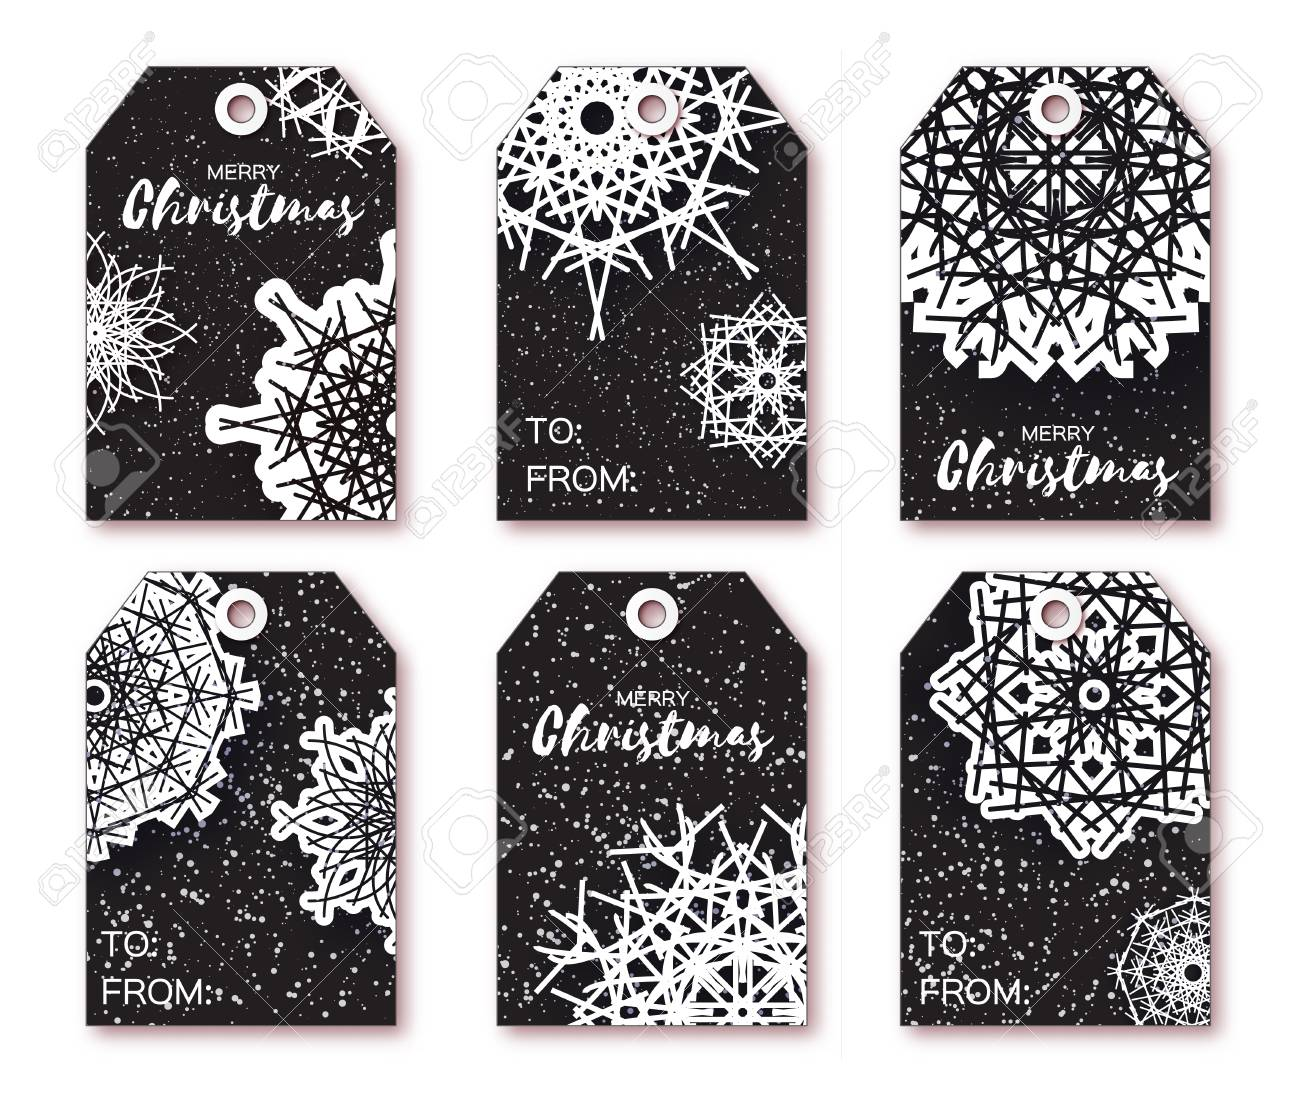 photograph regarding Printable Christmas Tags Black and White referred to as Black Xmas labels with origami white snowflake. Organized-toward-retain the services of..